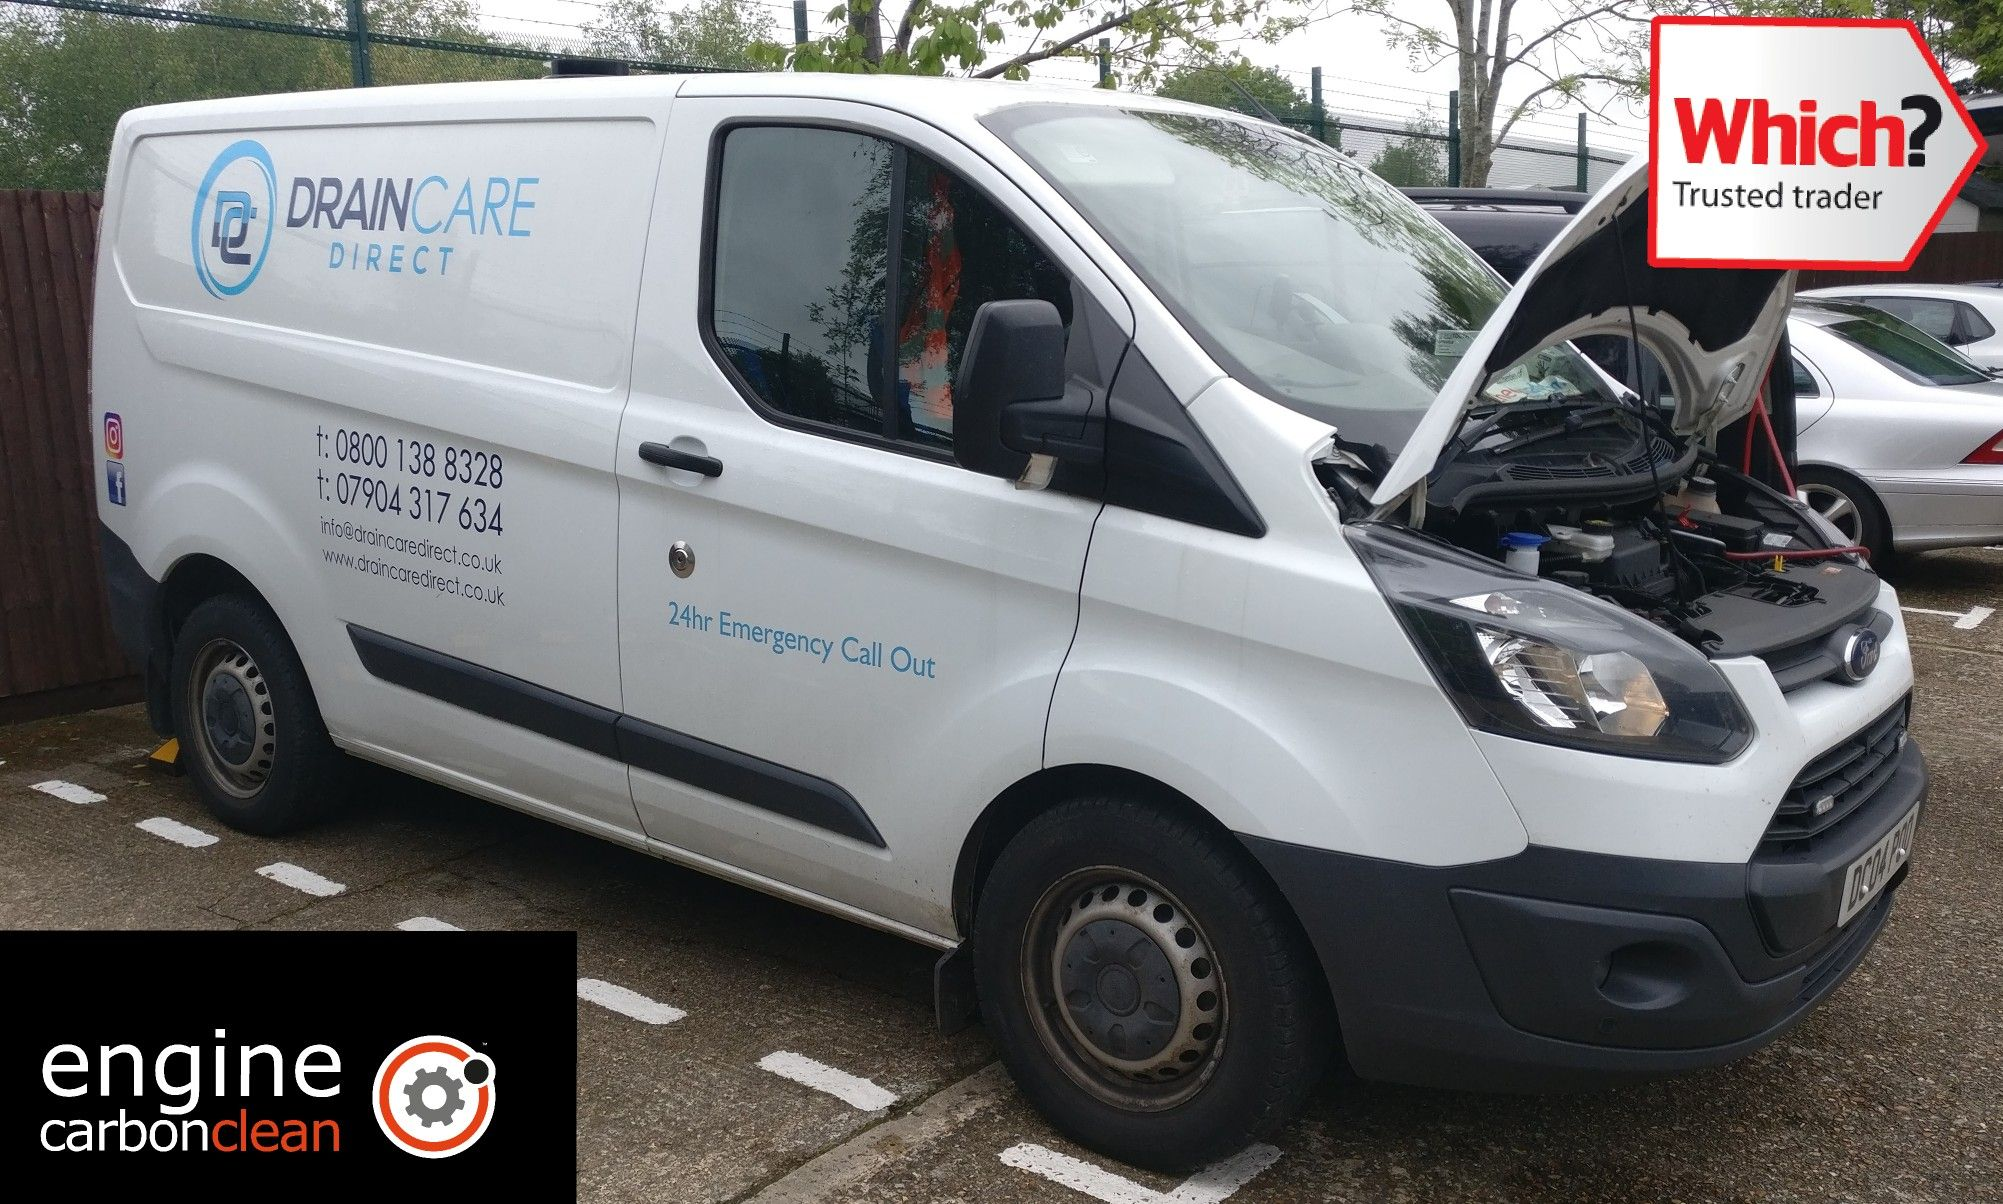 Called To Do Our Which Trusted Traders Approved Engine Carbon Clean With Diagnostics To Check That The Engine In Good Transit Custom Ford Transit Engineering